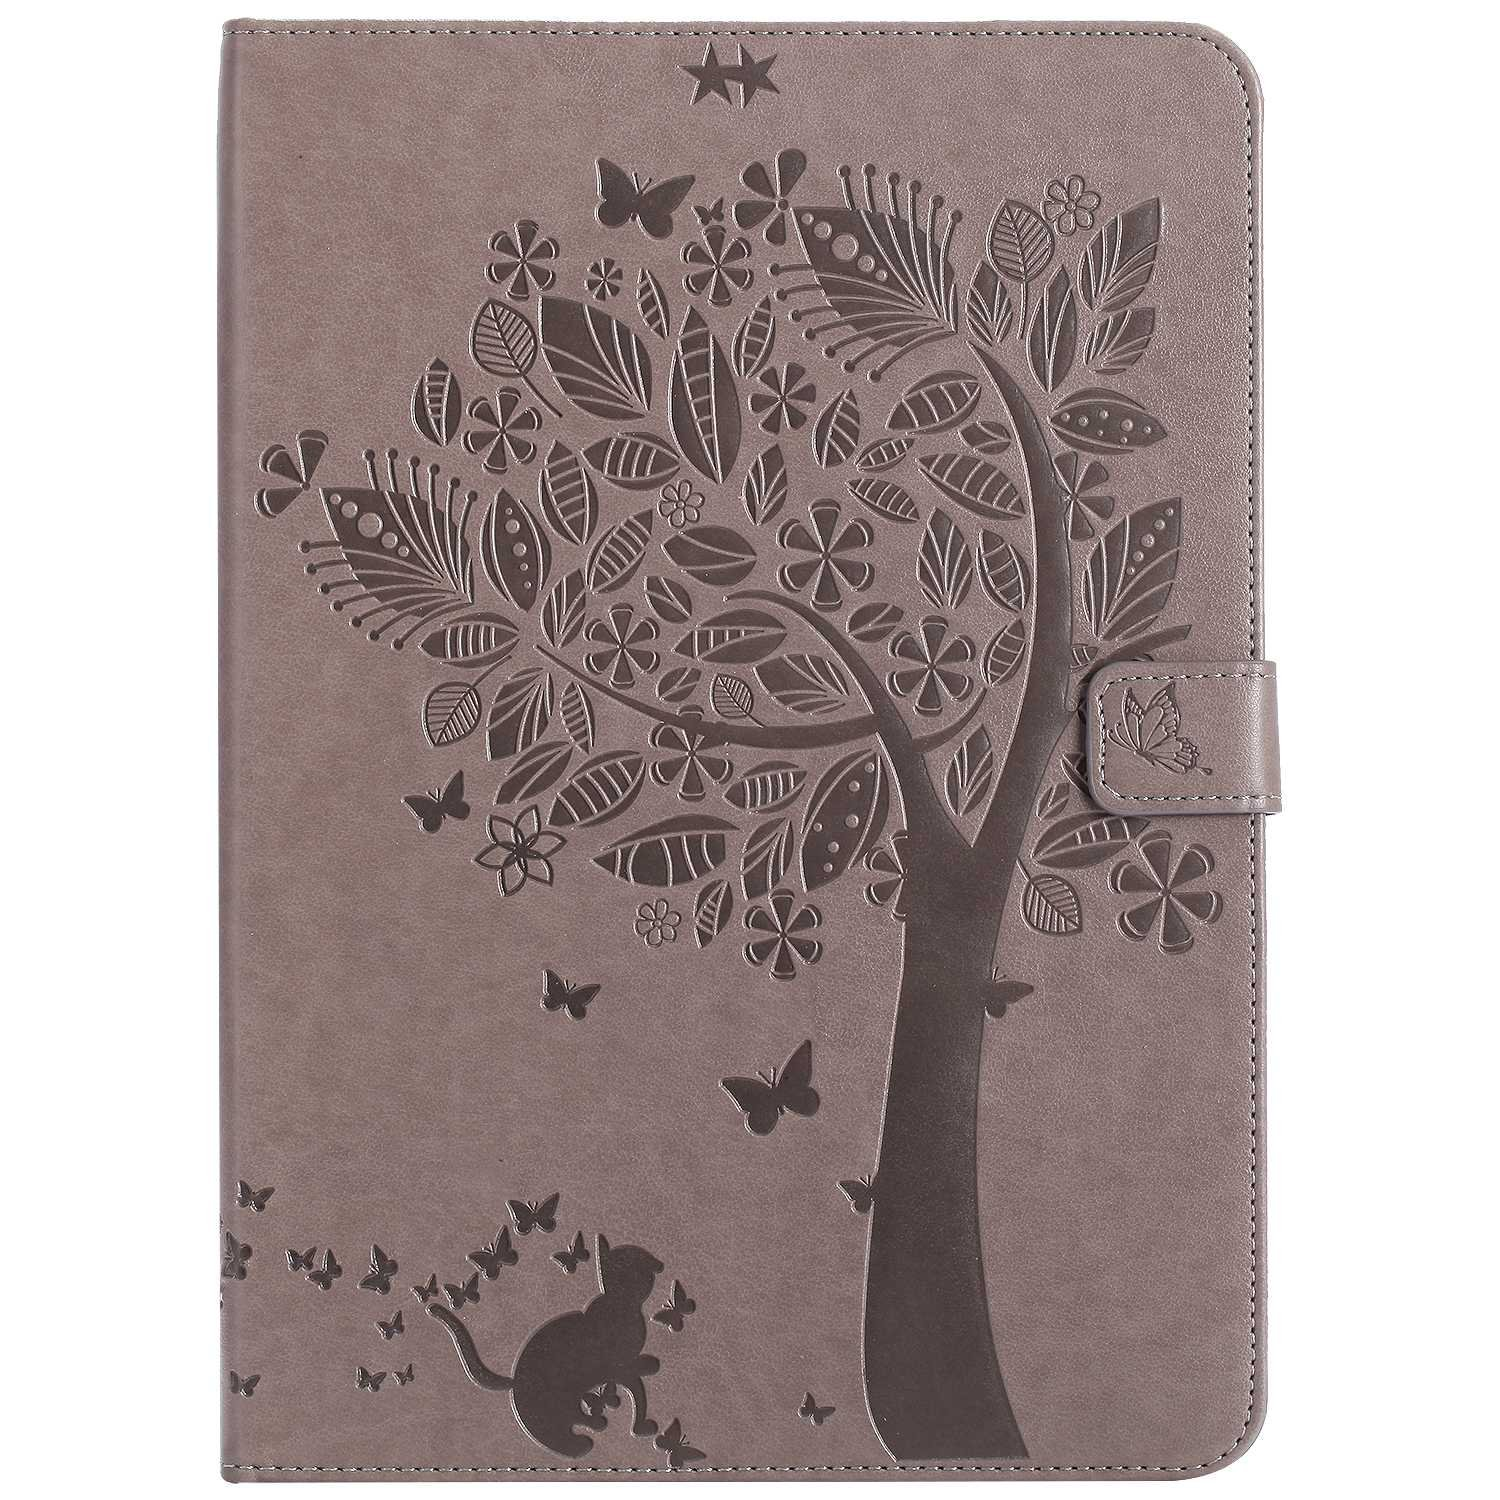 Bear Village iPad Air 2 (9.7 Inch) Case, Leather Magnetic Case, Fullbody Protective Cover with Stand Function for Apple iPad Air 2 (9.7 Inch), Gray by Bear Village